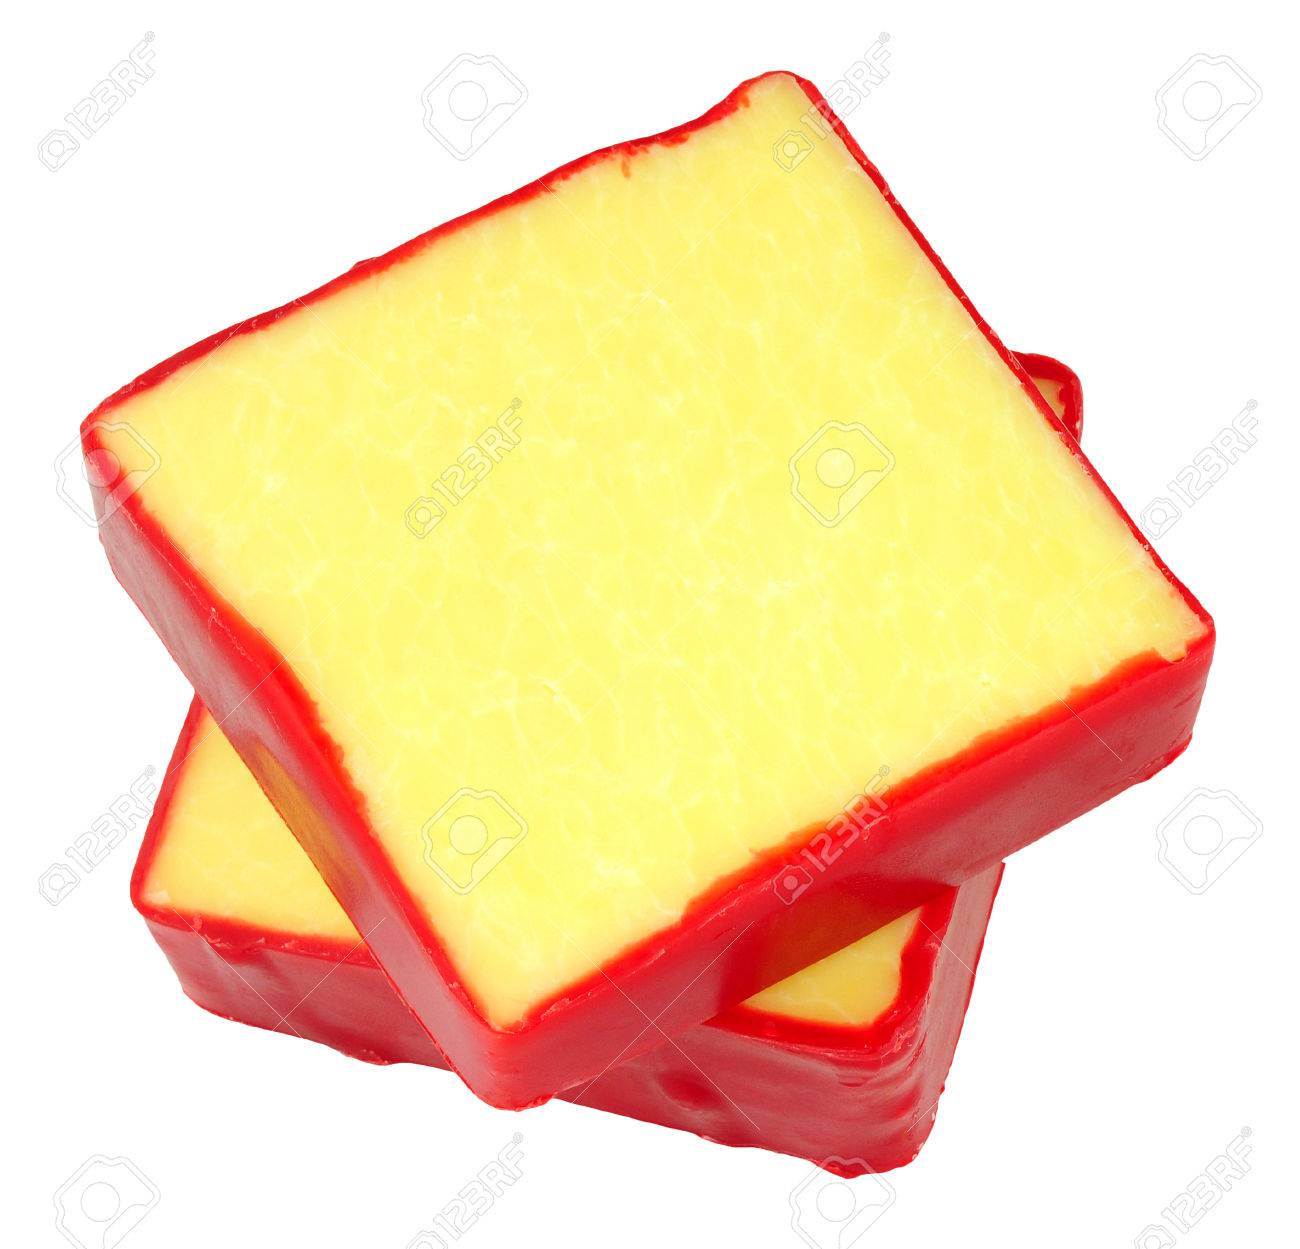 Monterey Jack cheese squares with red wax coating isolated on